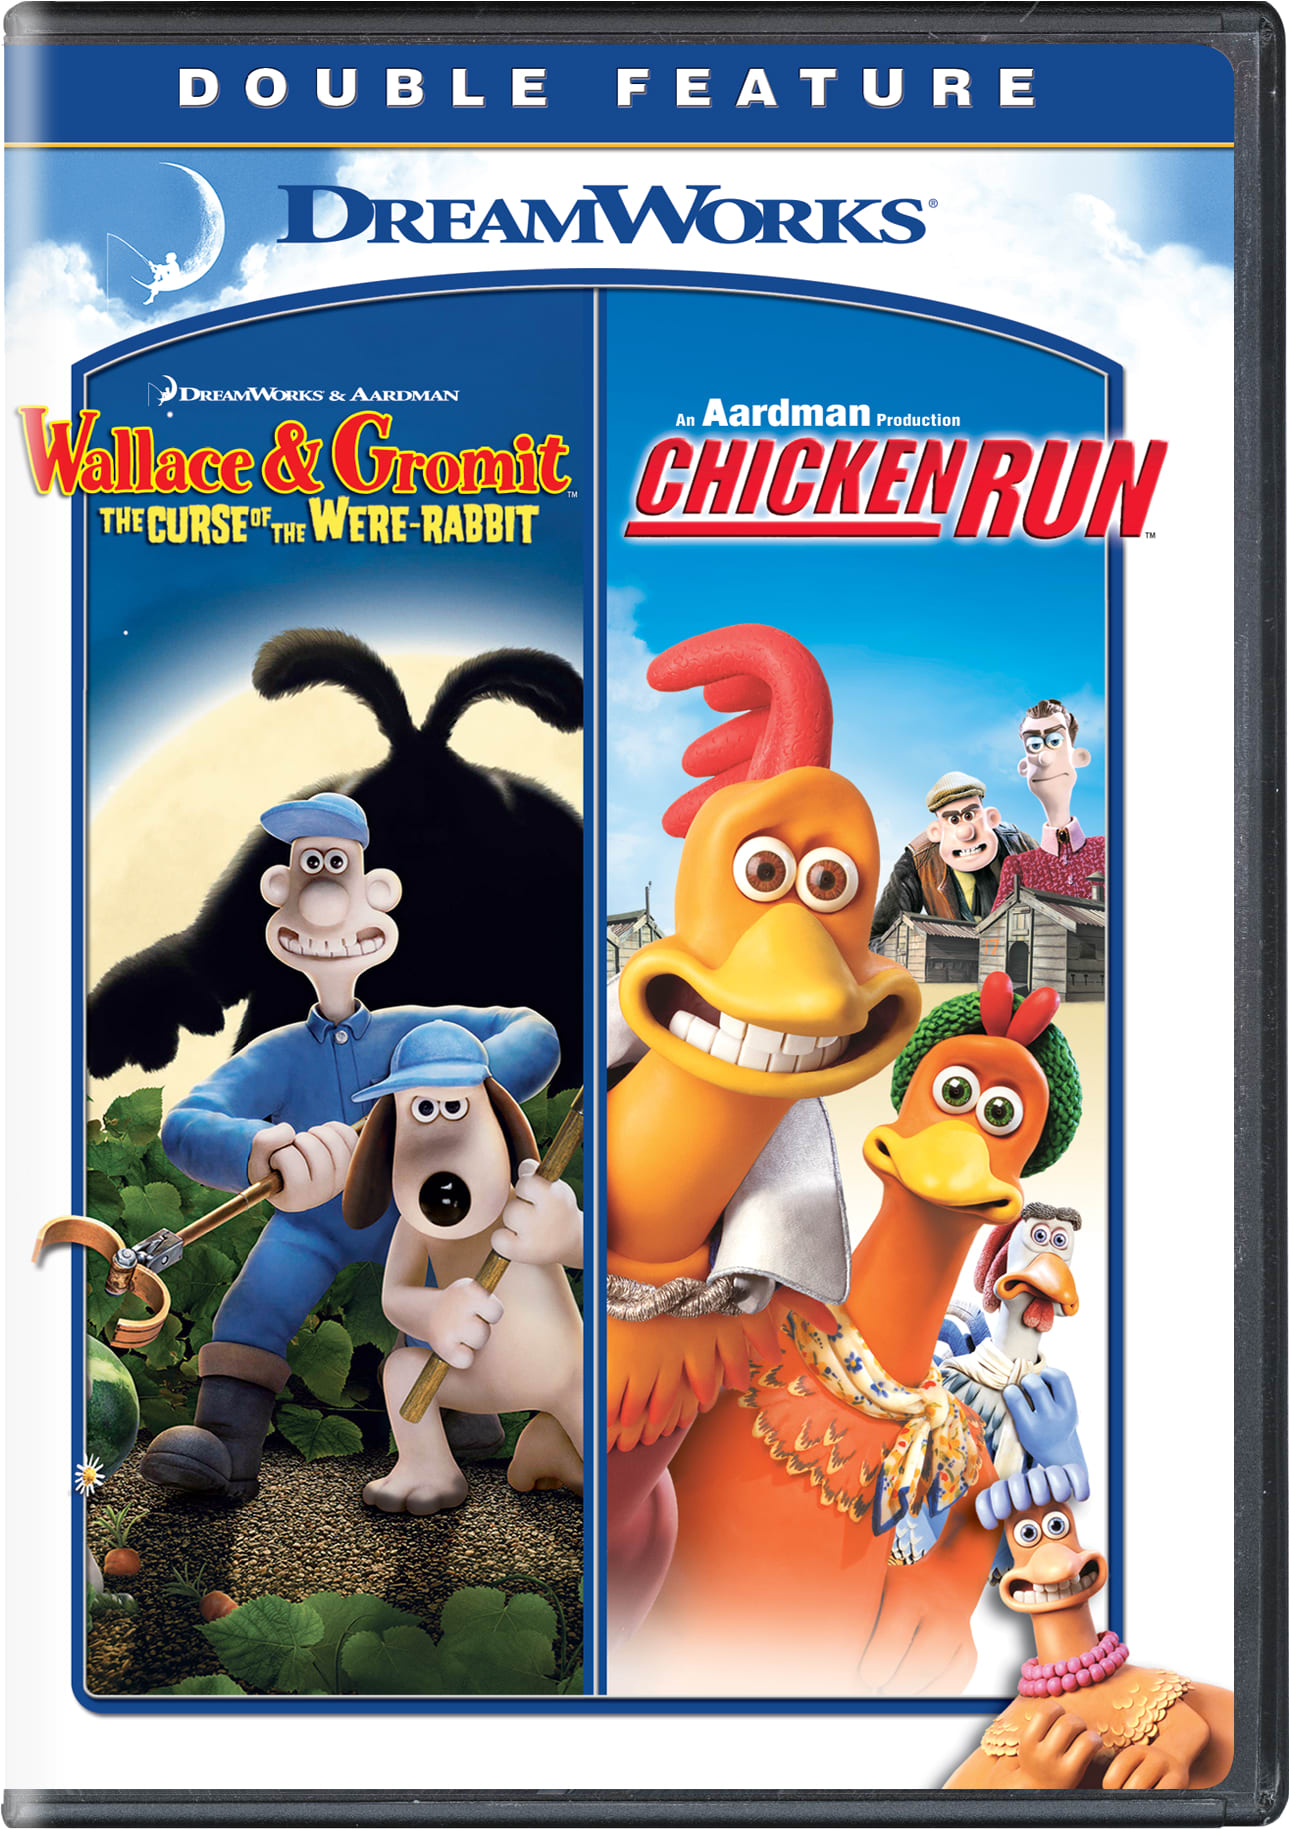 Wallace & Gromit: The Curse of the Were-rabbit /Chicken Run [DVD]